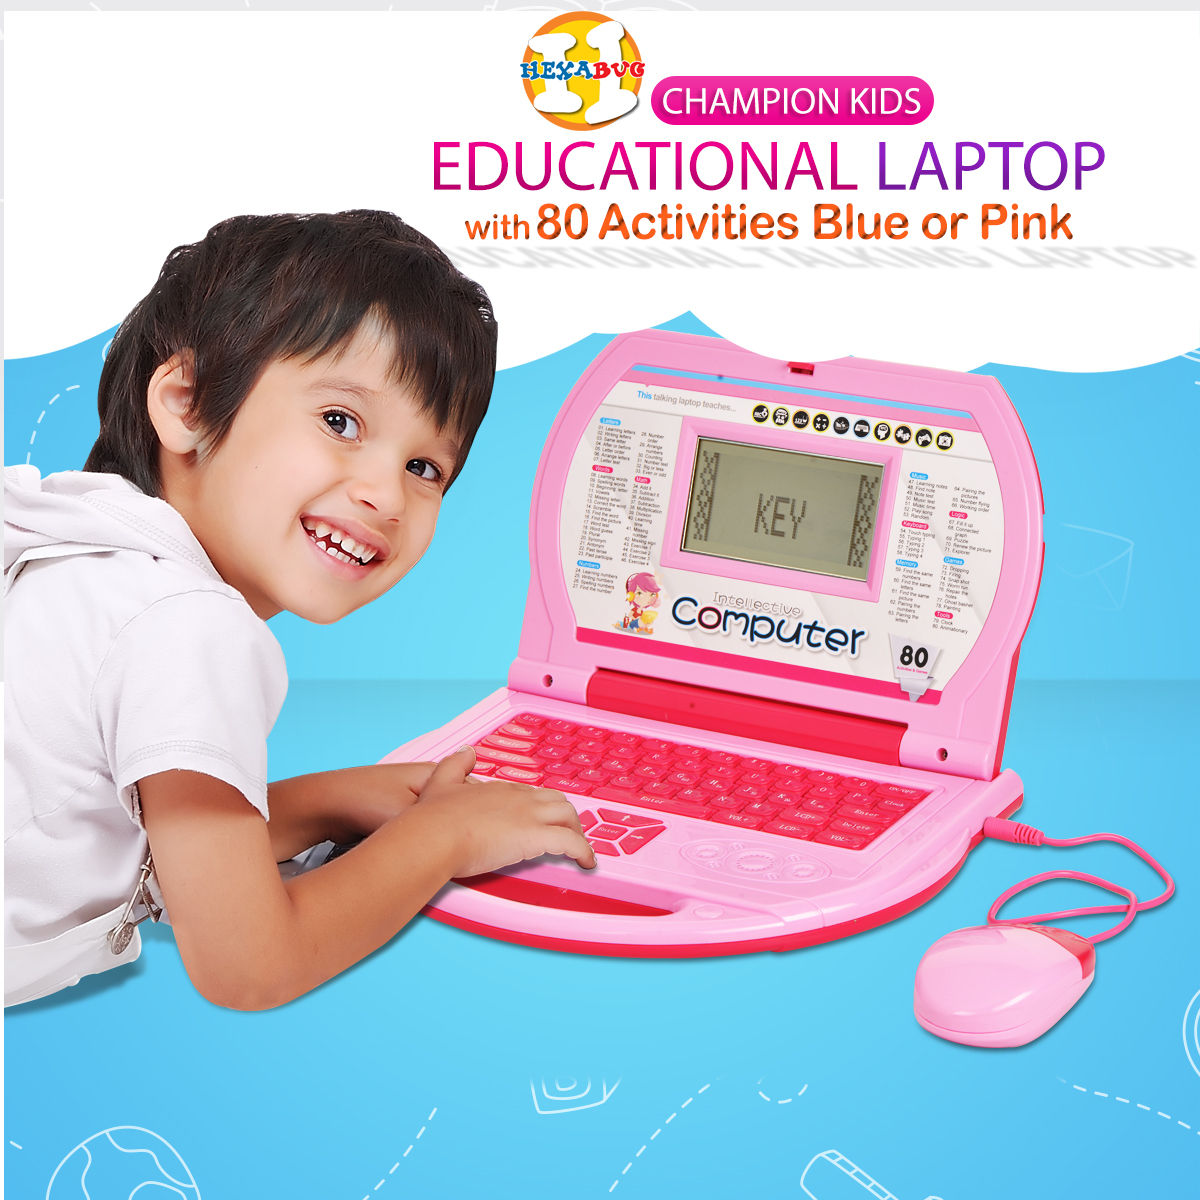 buy champion kids educational laptop with 80 activities blue or pink online at best price in. Black Bedroom Furniture Sets. Home Design Ideas